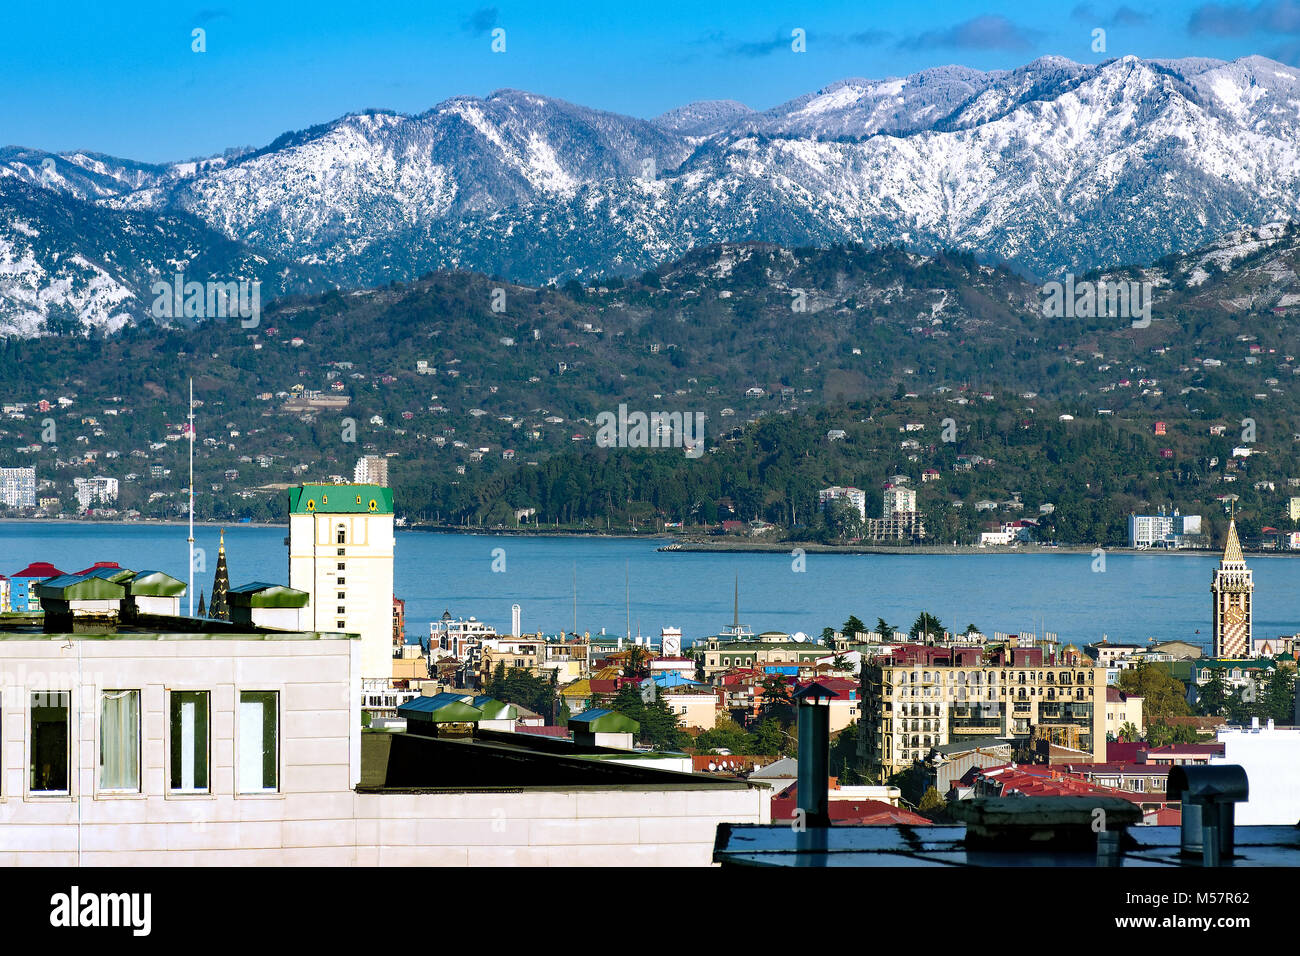 Picturesque view of the city, the roofs of the houses, the sea, the mountains covered with snow. Close up to nature. - Stock Image